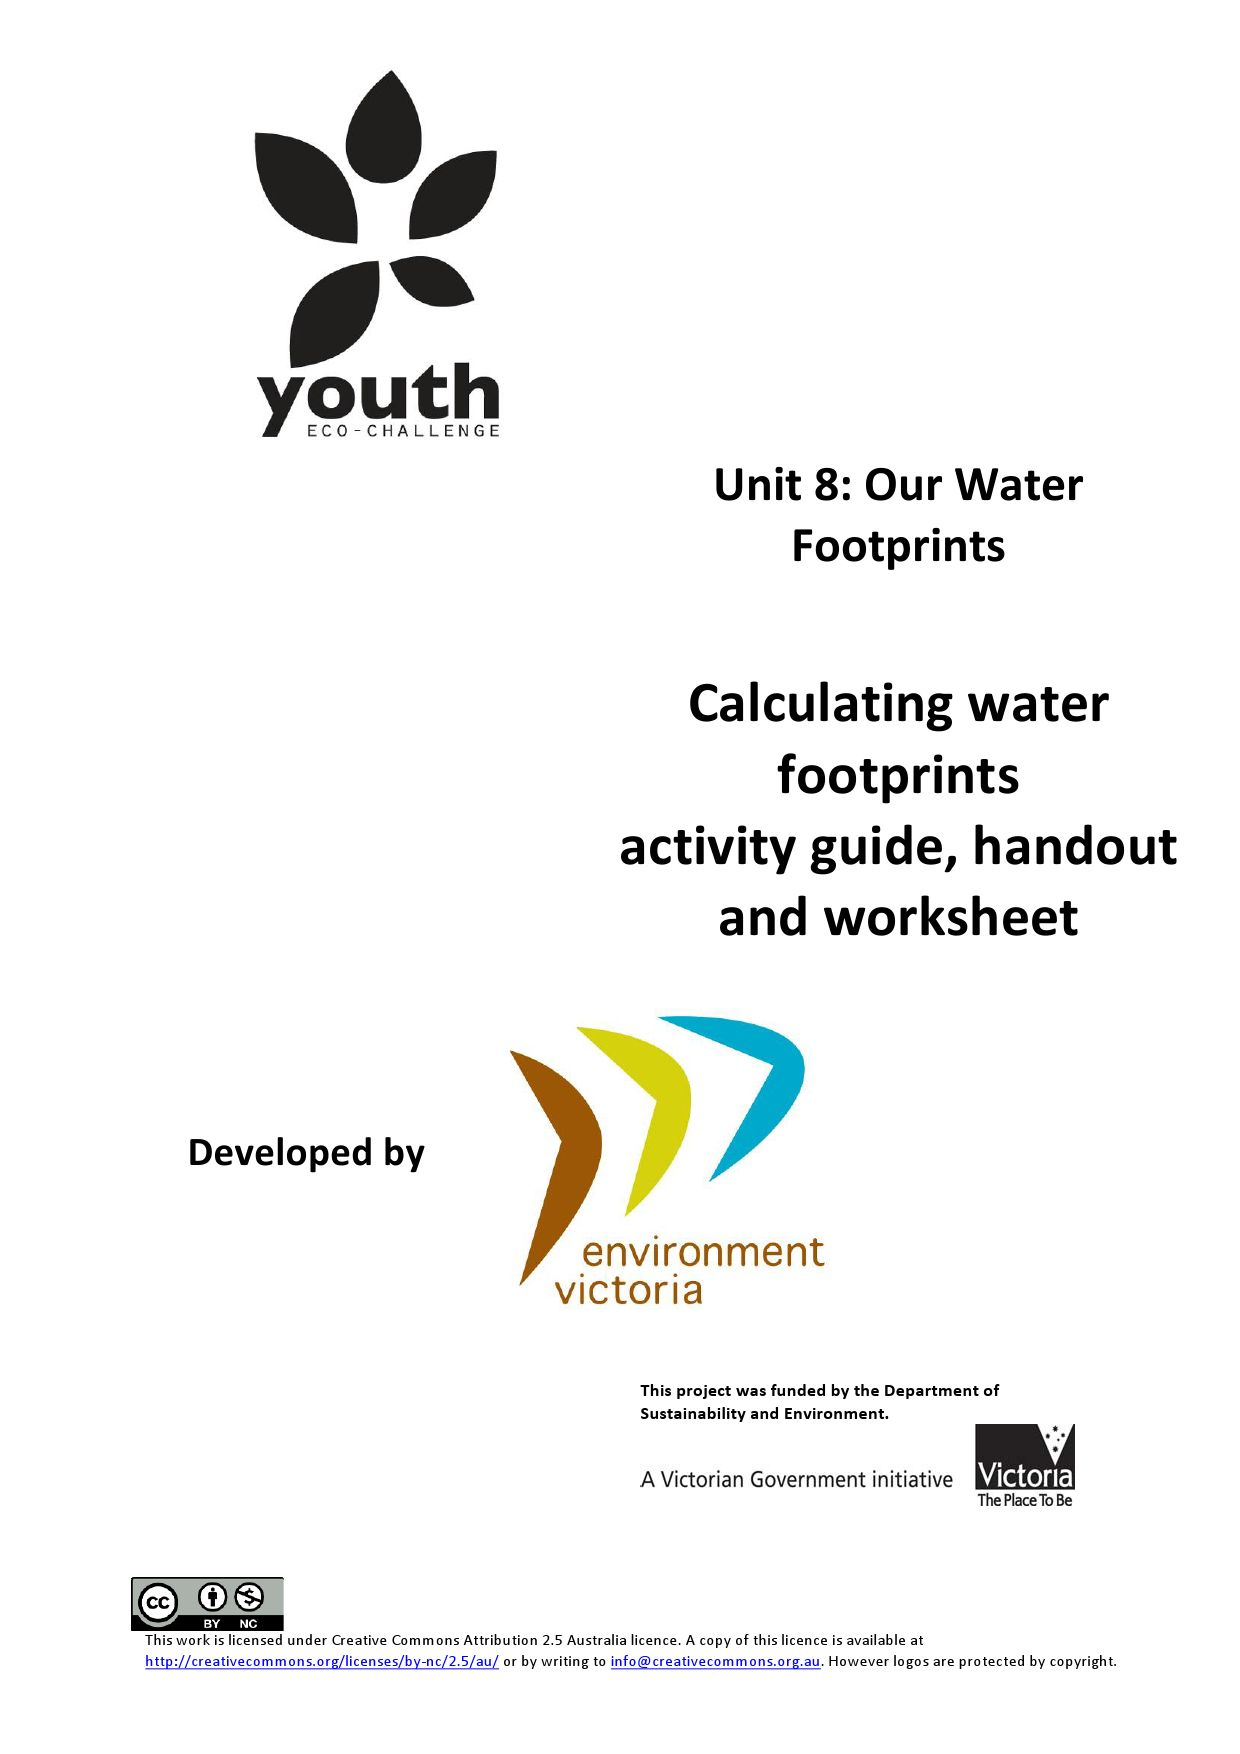 VCAL: unit 8 calculating water footprints activity guide